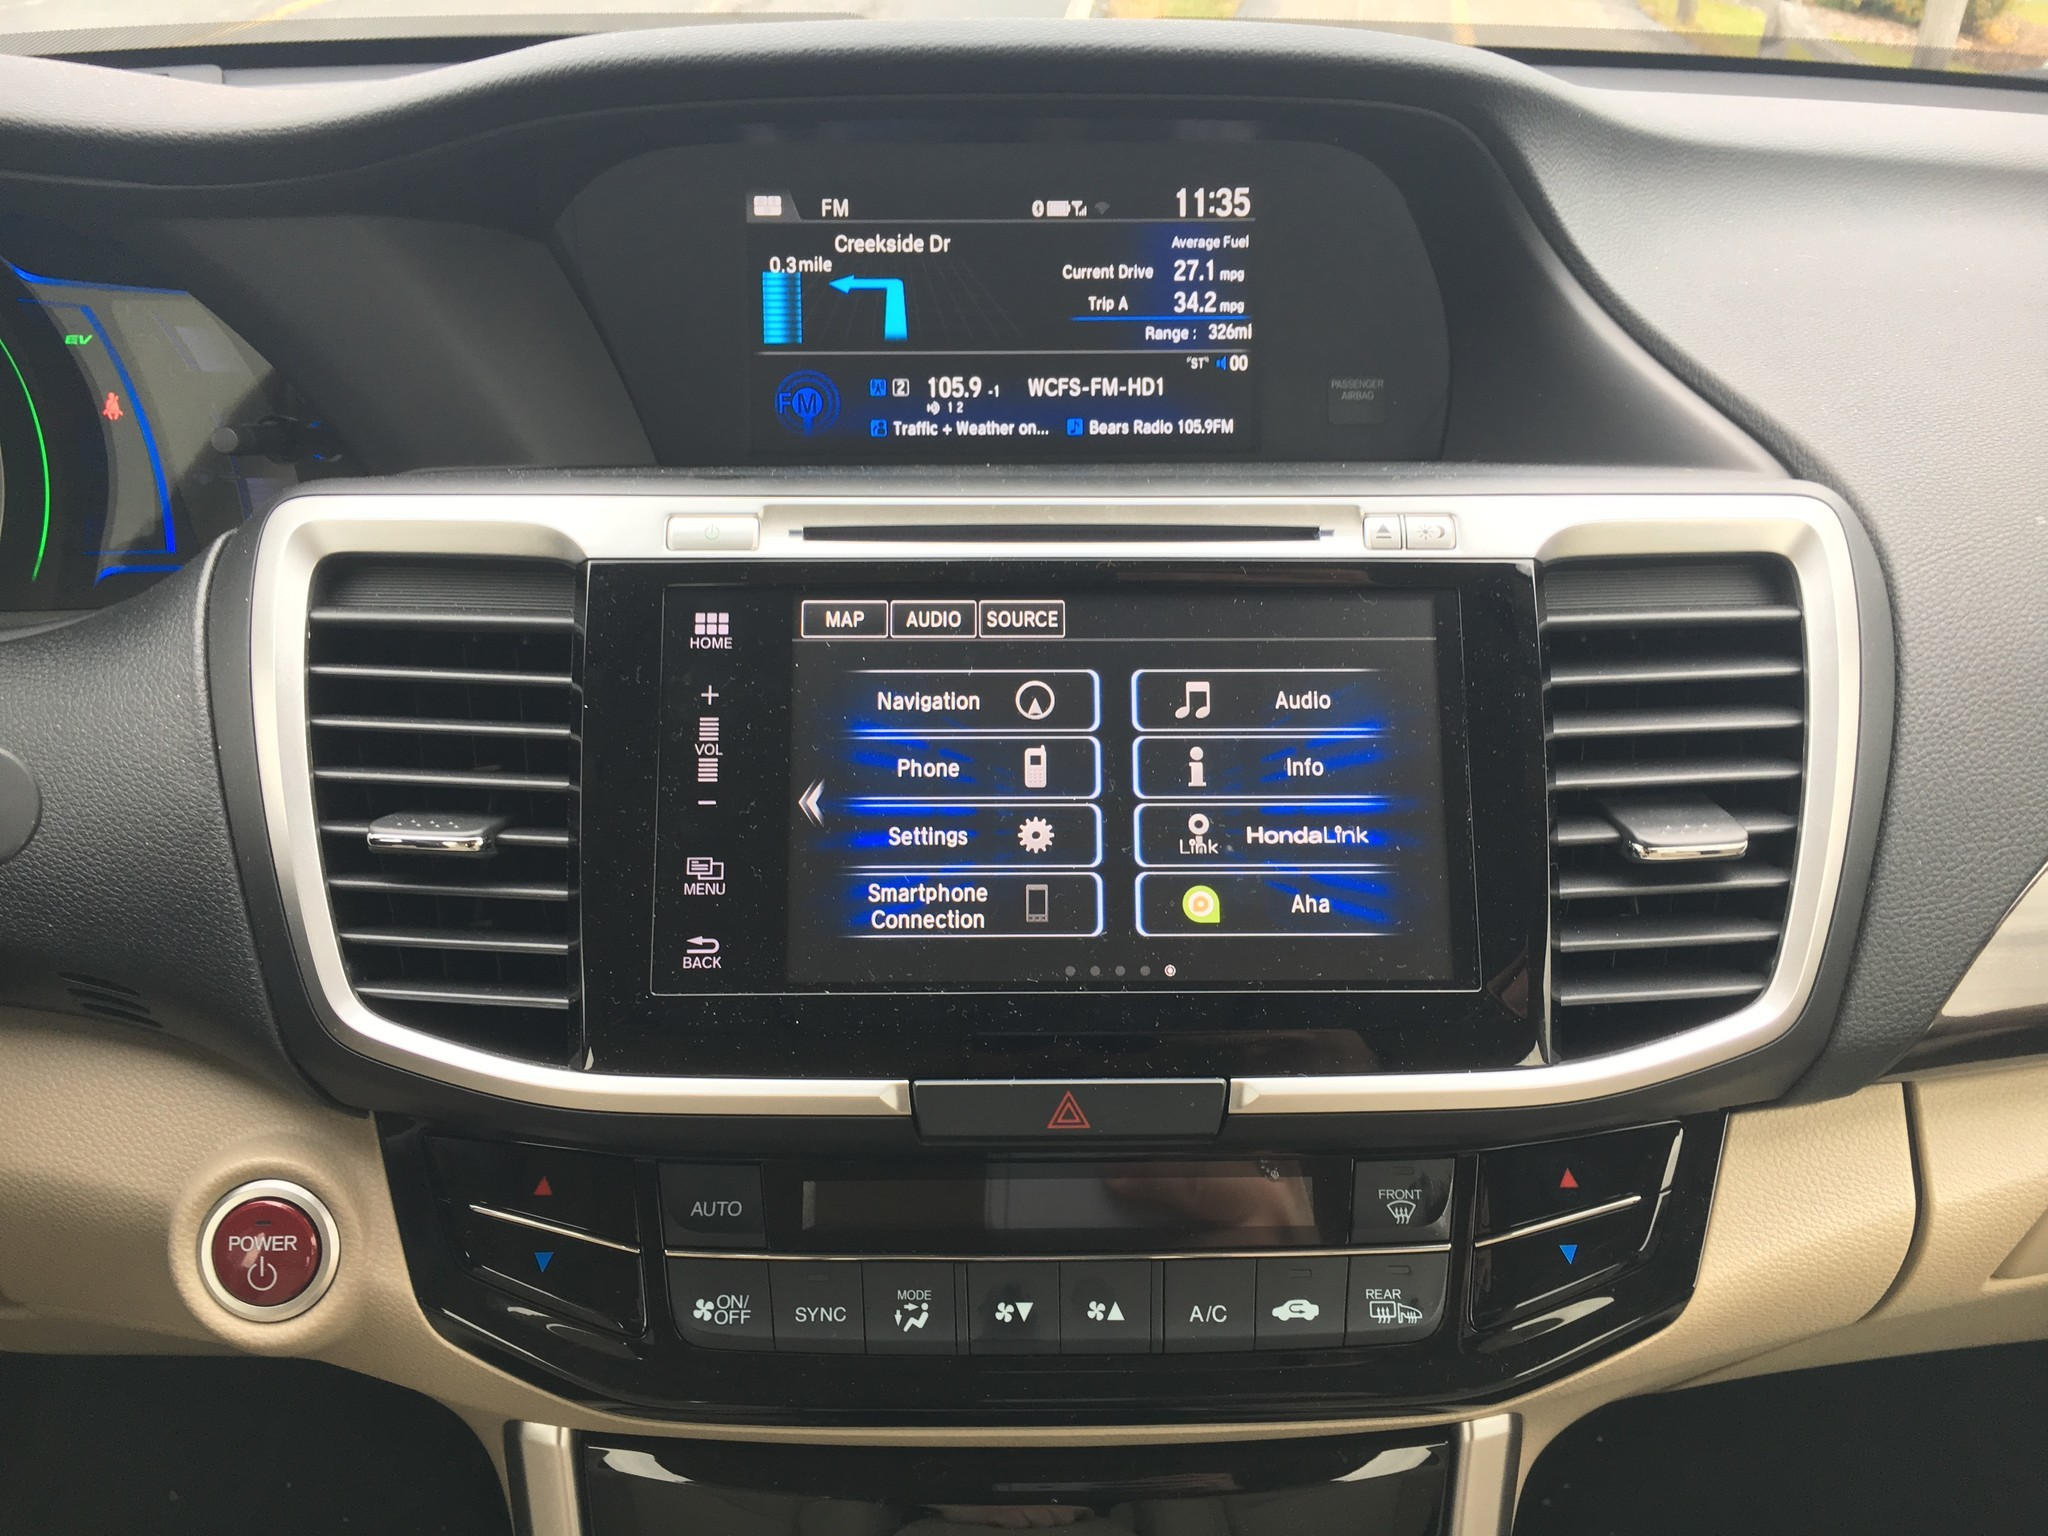 2017 Honda Accord Hybrid There Are Two Screens In The Center Of New 7 Inch Touch Screen At Top Stack Handles Audio